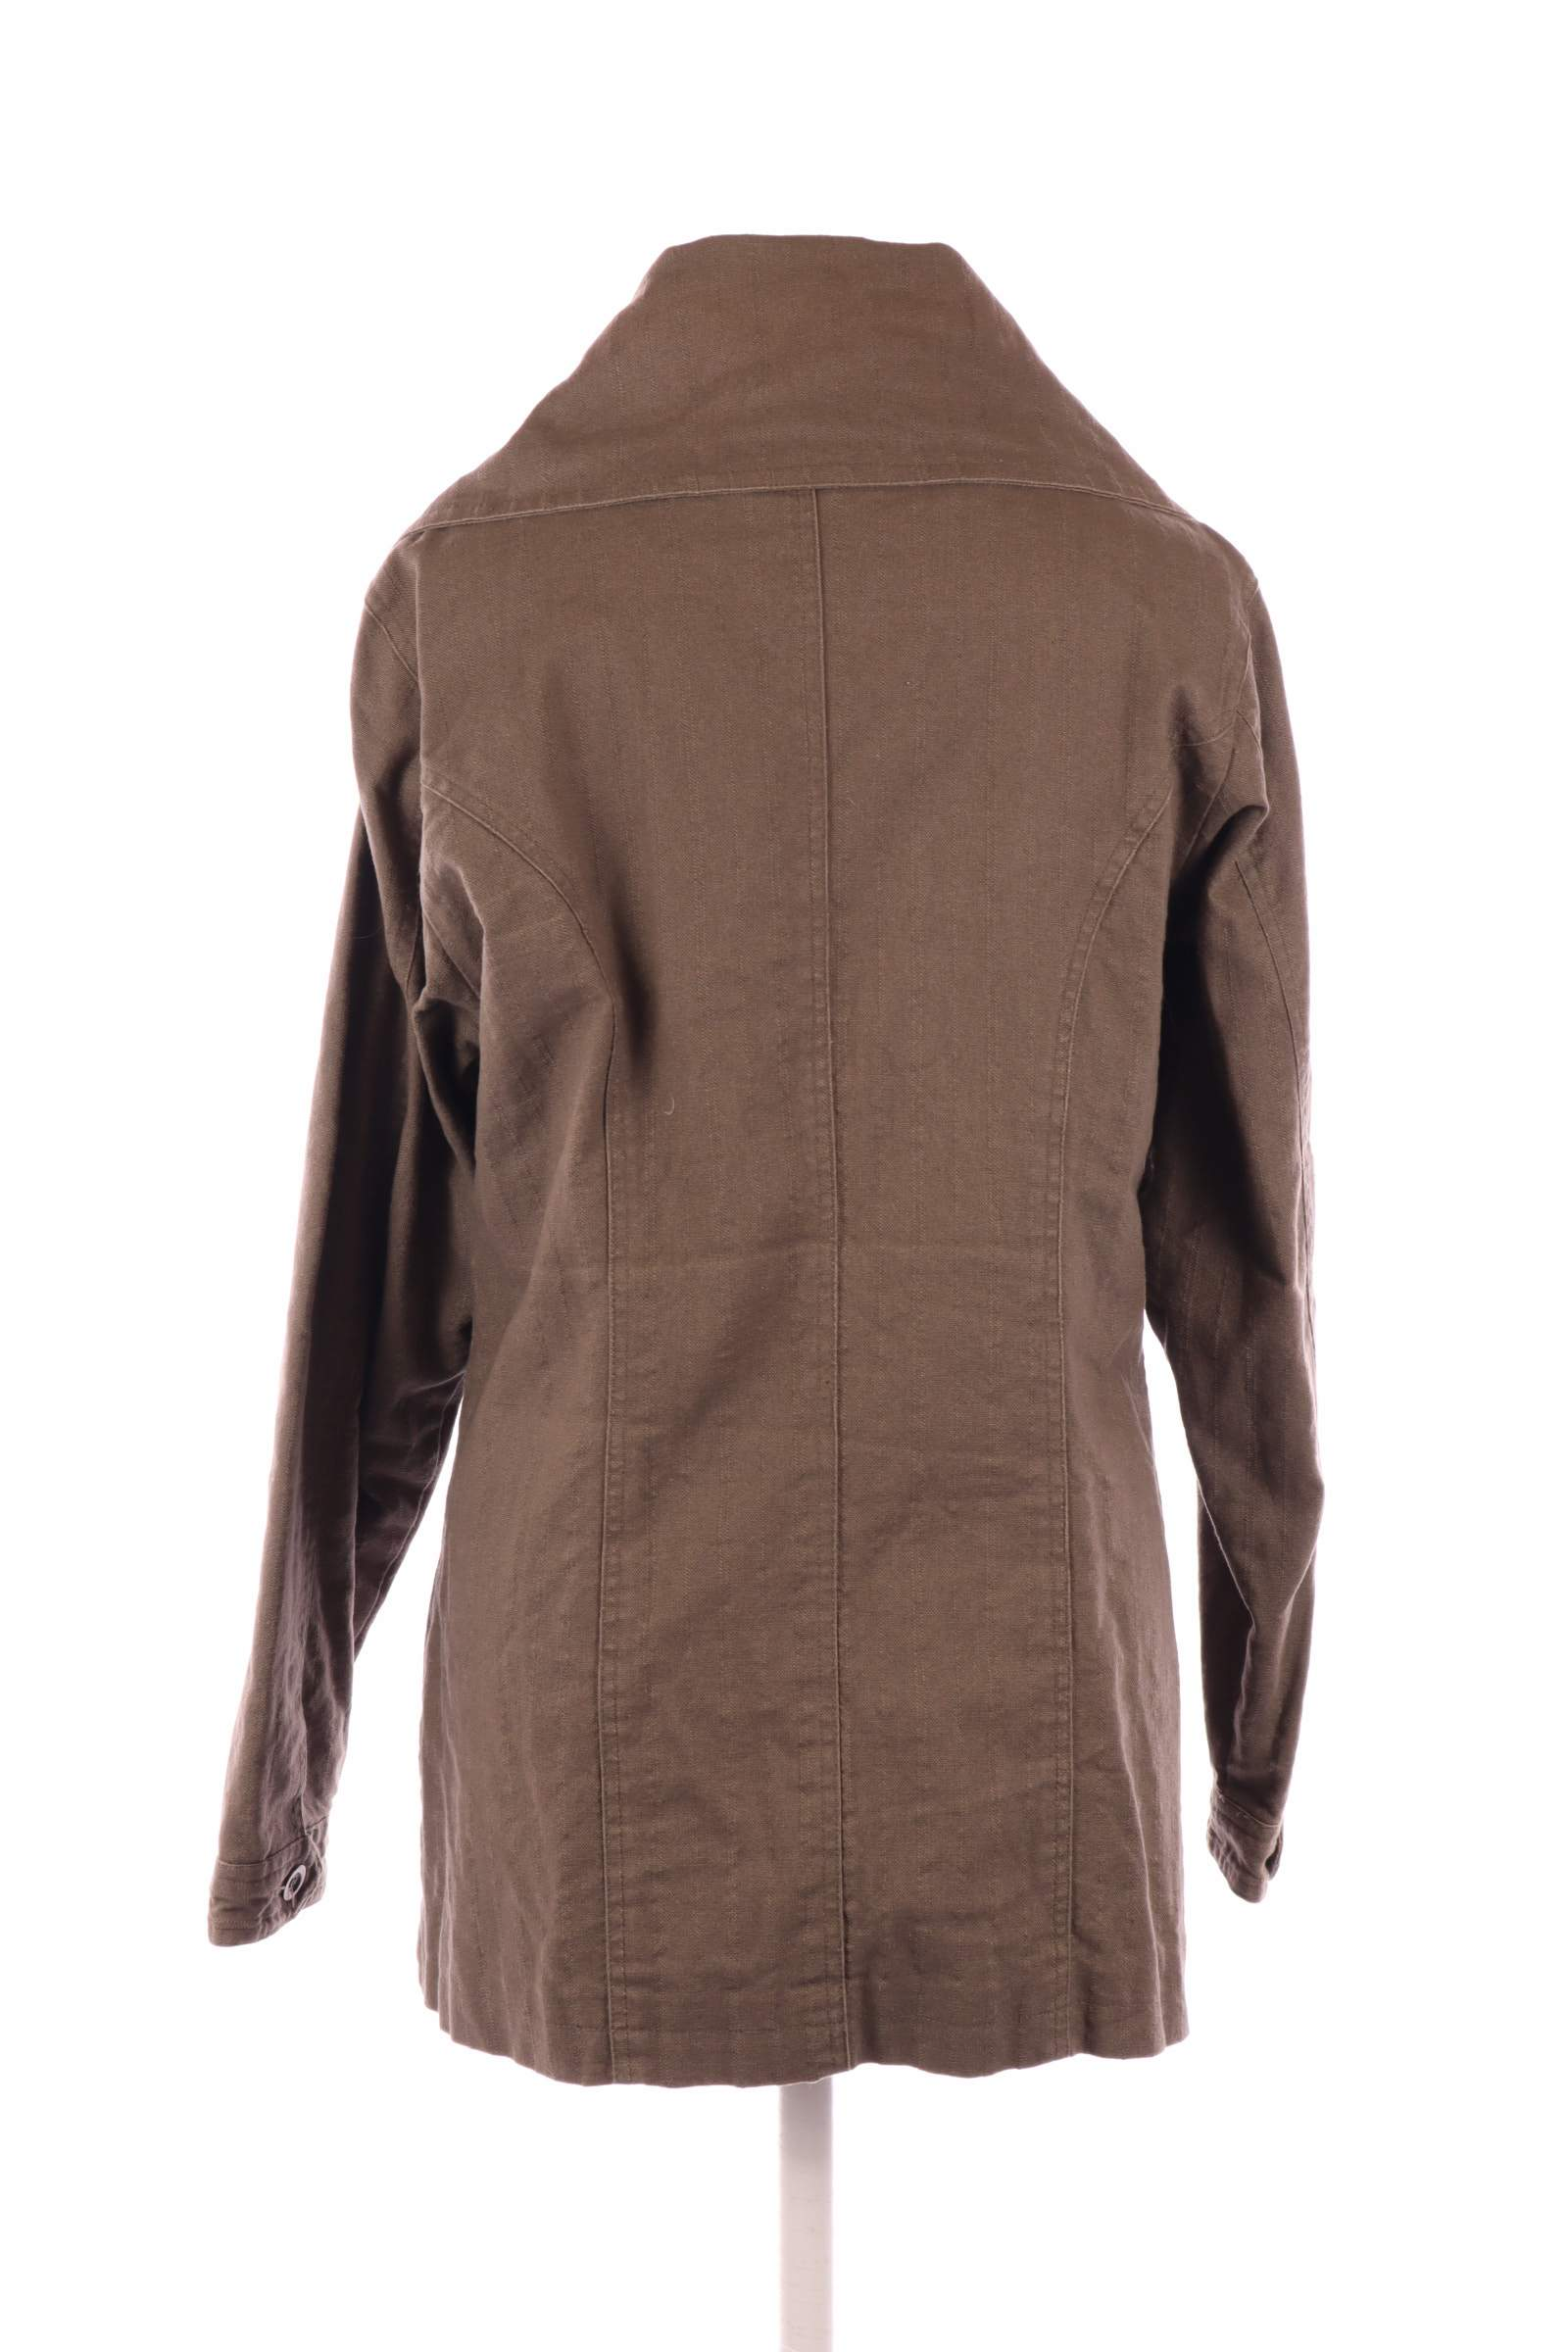 Casual by Earth Brown Coat - upty.store